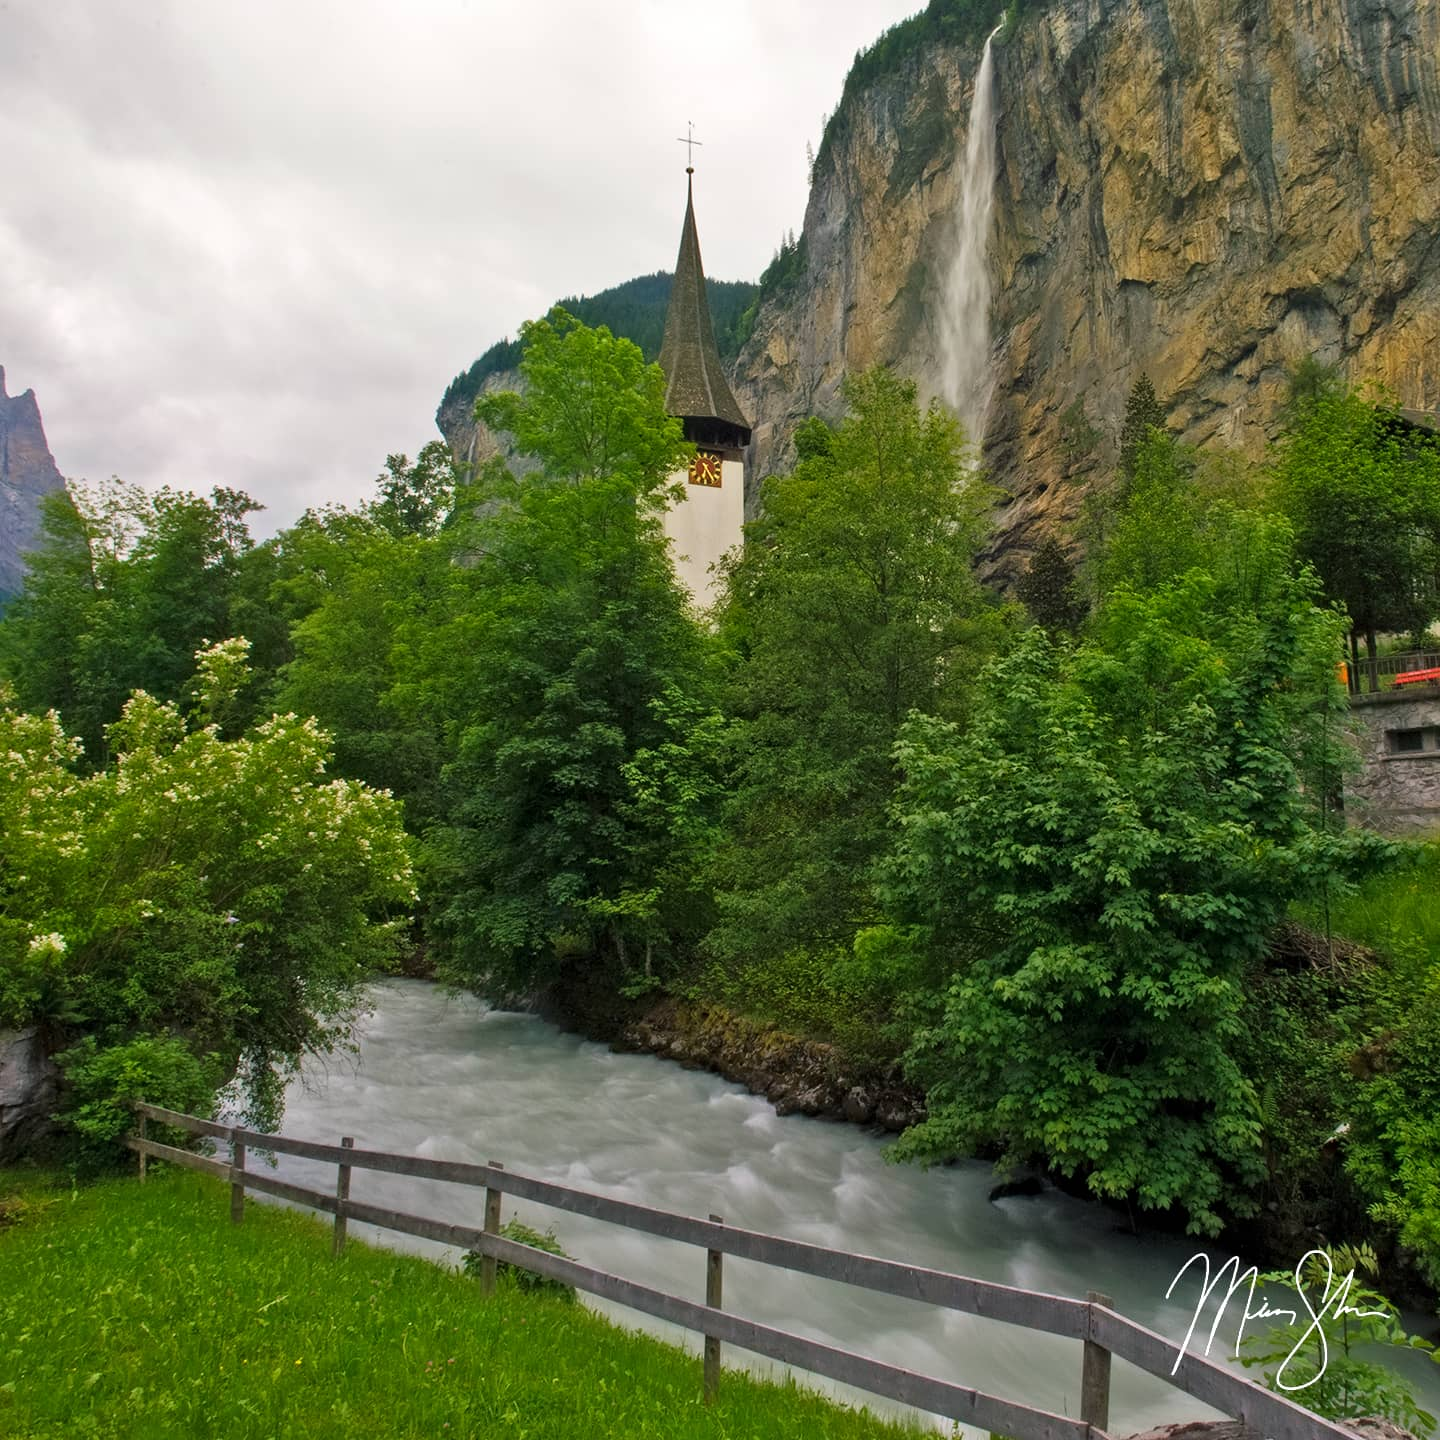 Lauterbrunnen Church - Lauterbrunnen, Switzerland